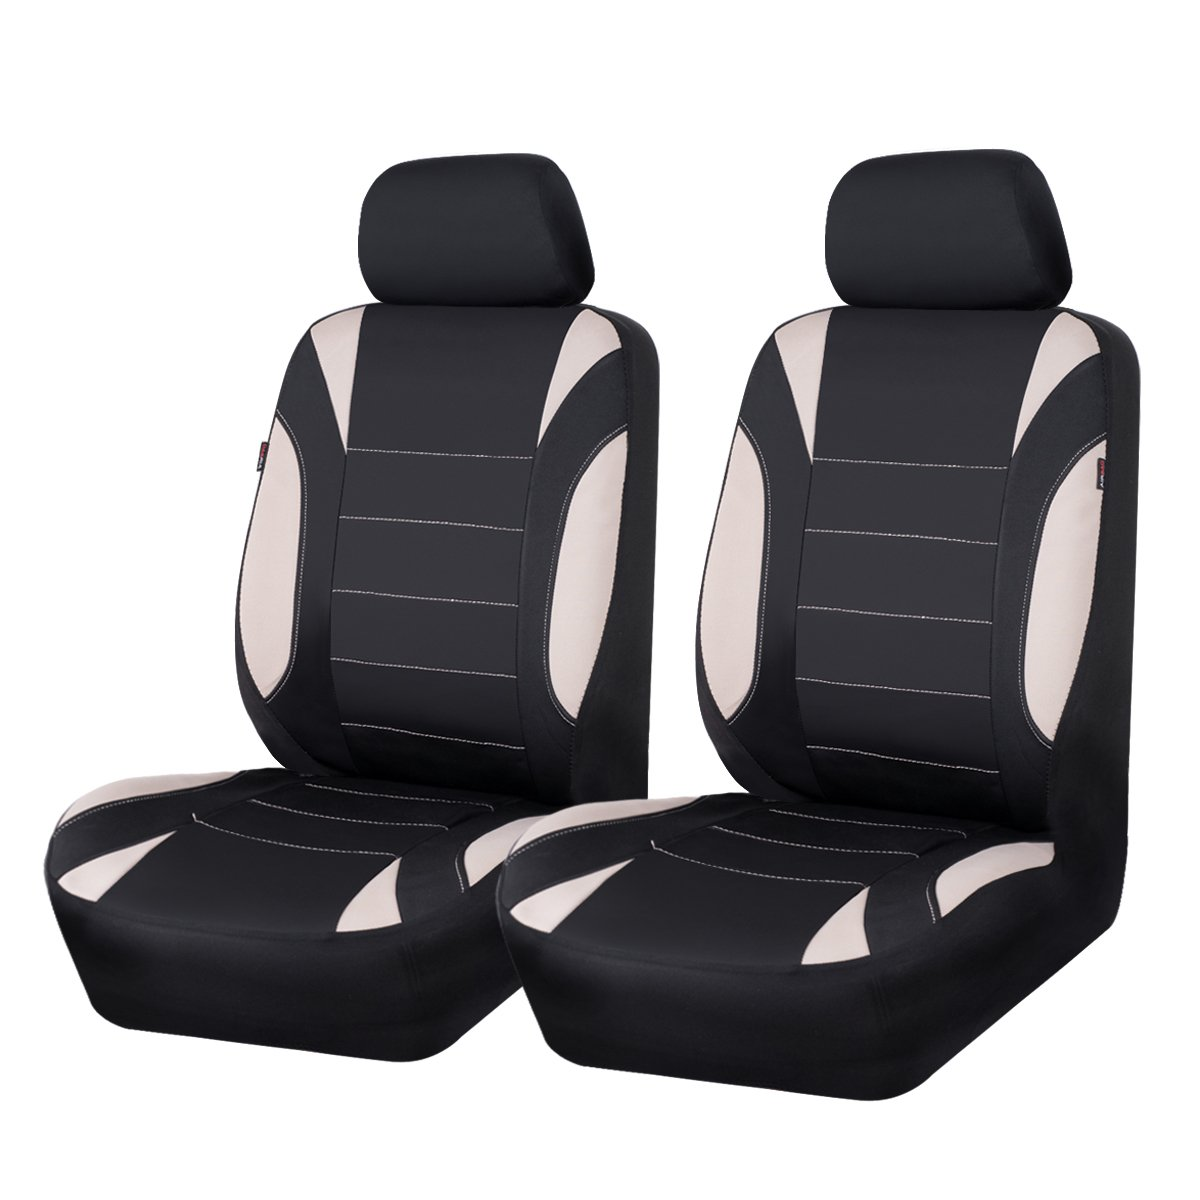 CAR PASS Neoprene 6 Pieces waterproof Two Front Seat Car Covers Set Black and Gray LJ